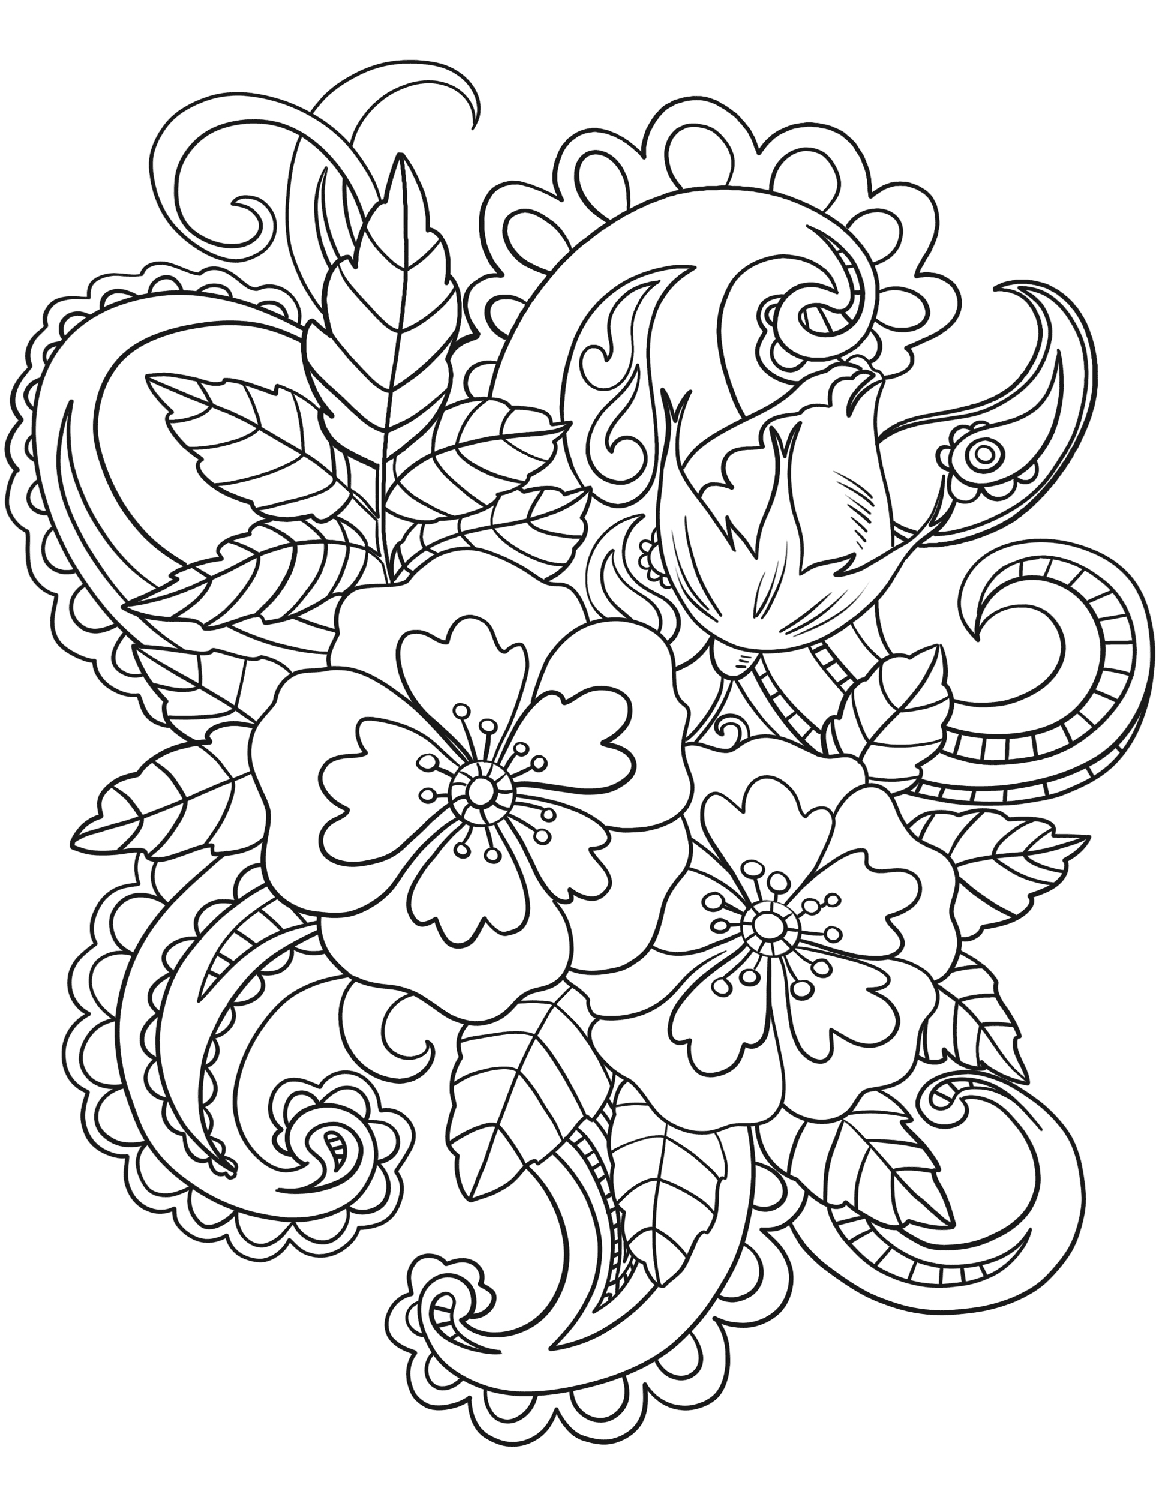 coloring designs free 20 attractive coloring pages for adults we need fun designs coloring free